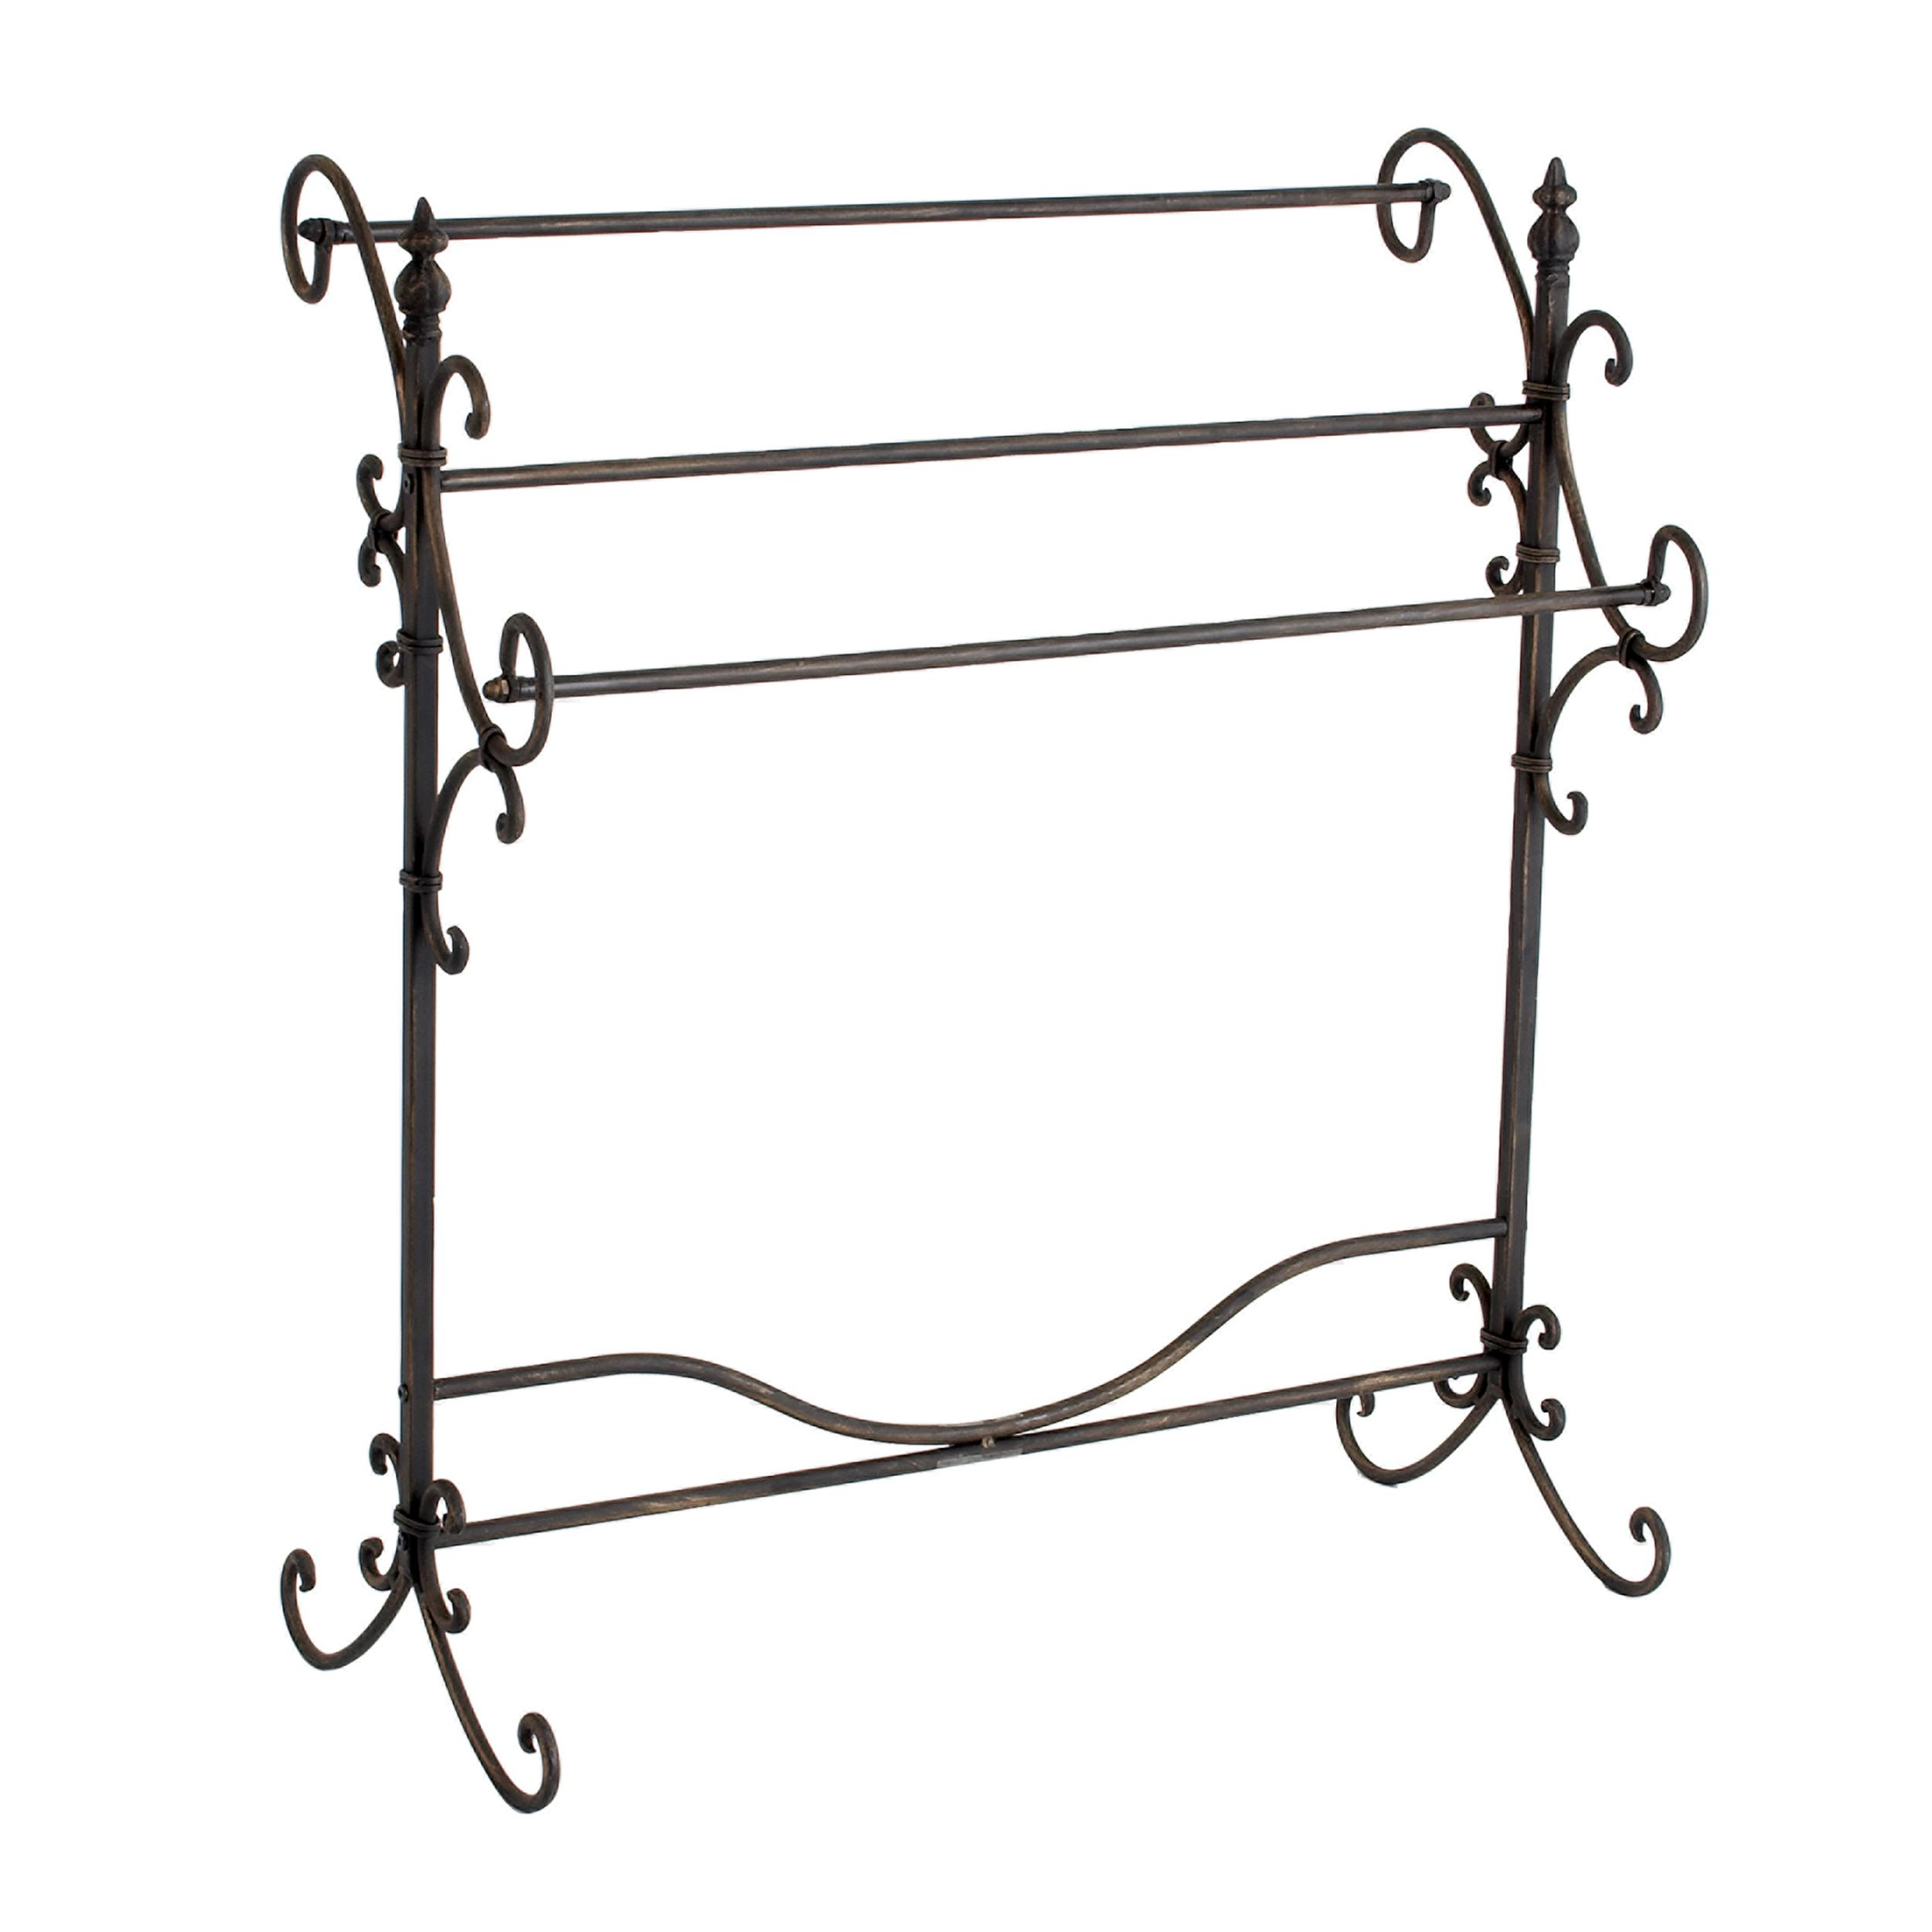 home racks co wayfair darby rack pdx cherry furniture quilt